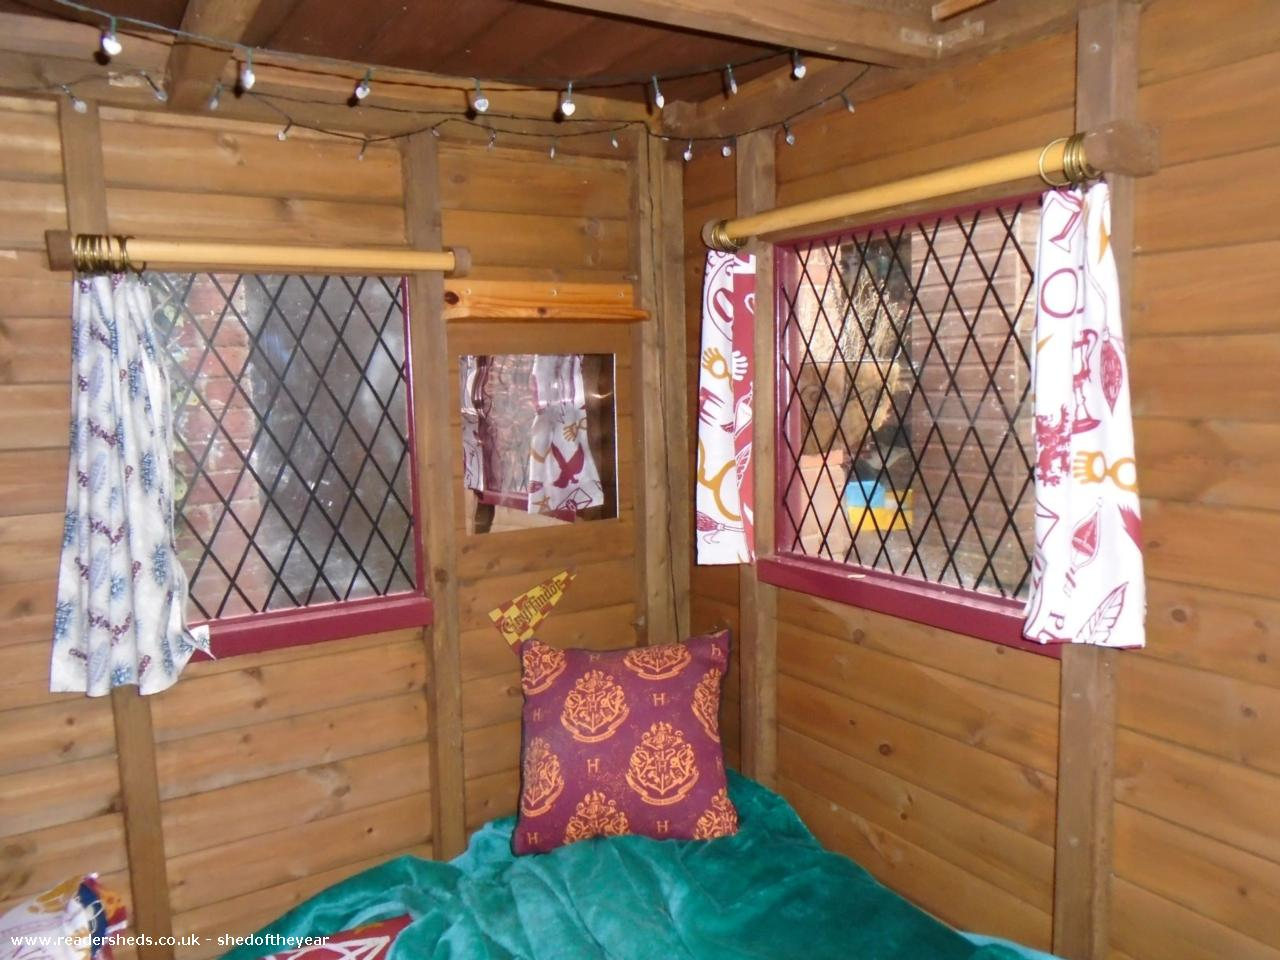 Photo of Ellie's Den, entry to Shed of the year-Main room